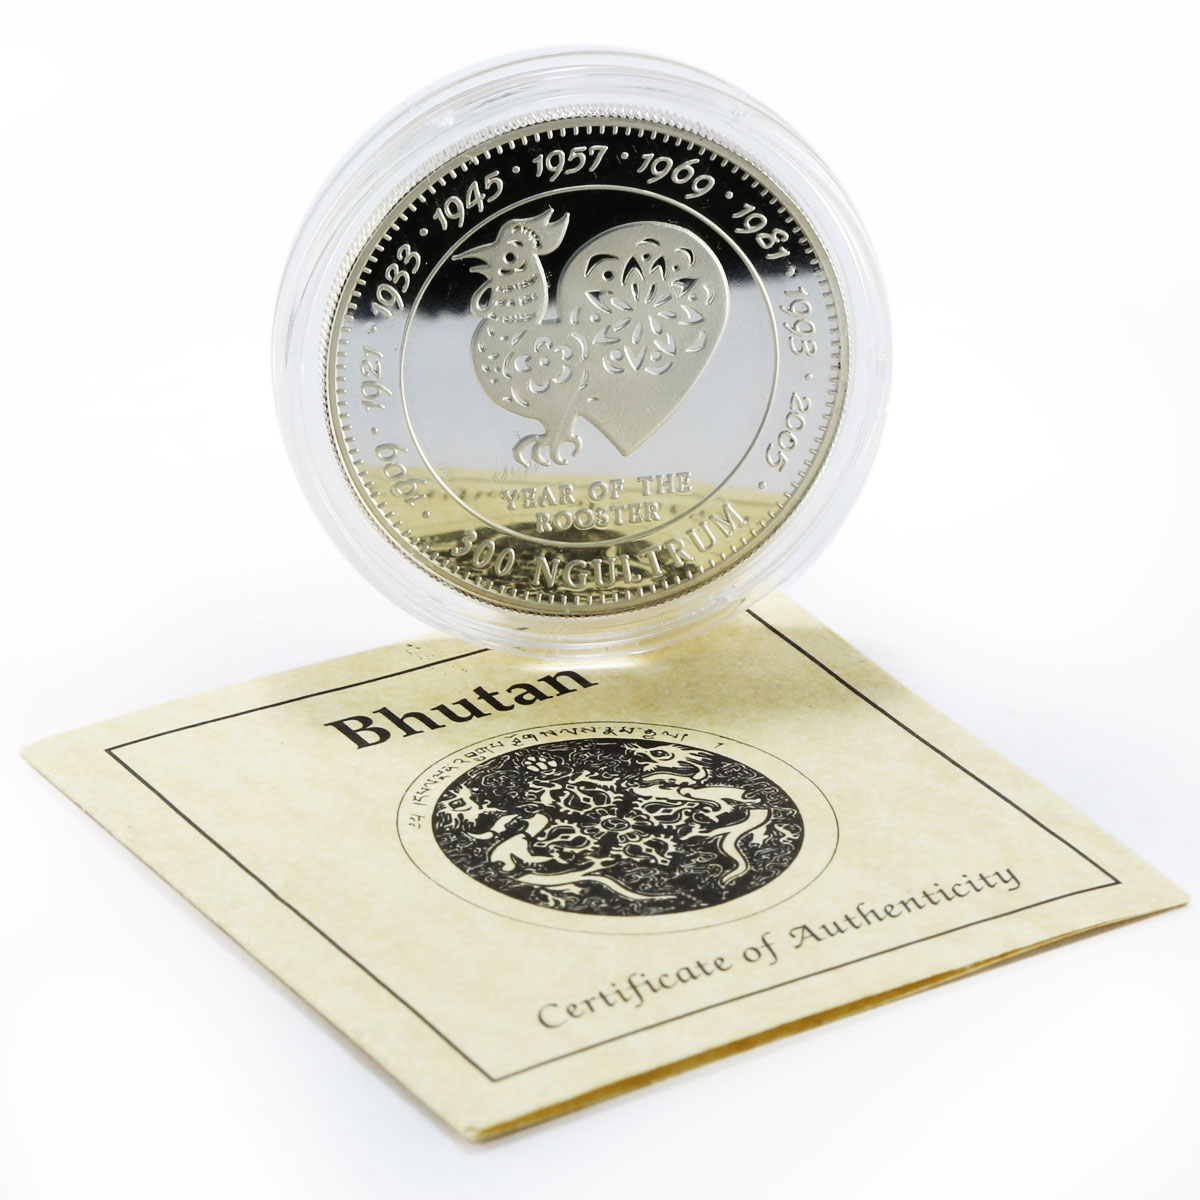 Bhutan 300 ngultrums Year of the Rooster proof silver coin 1996